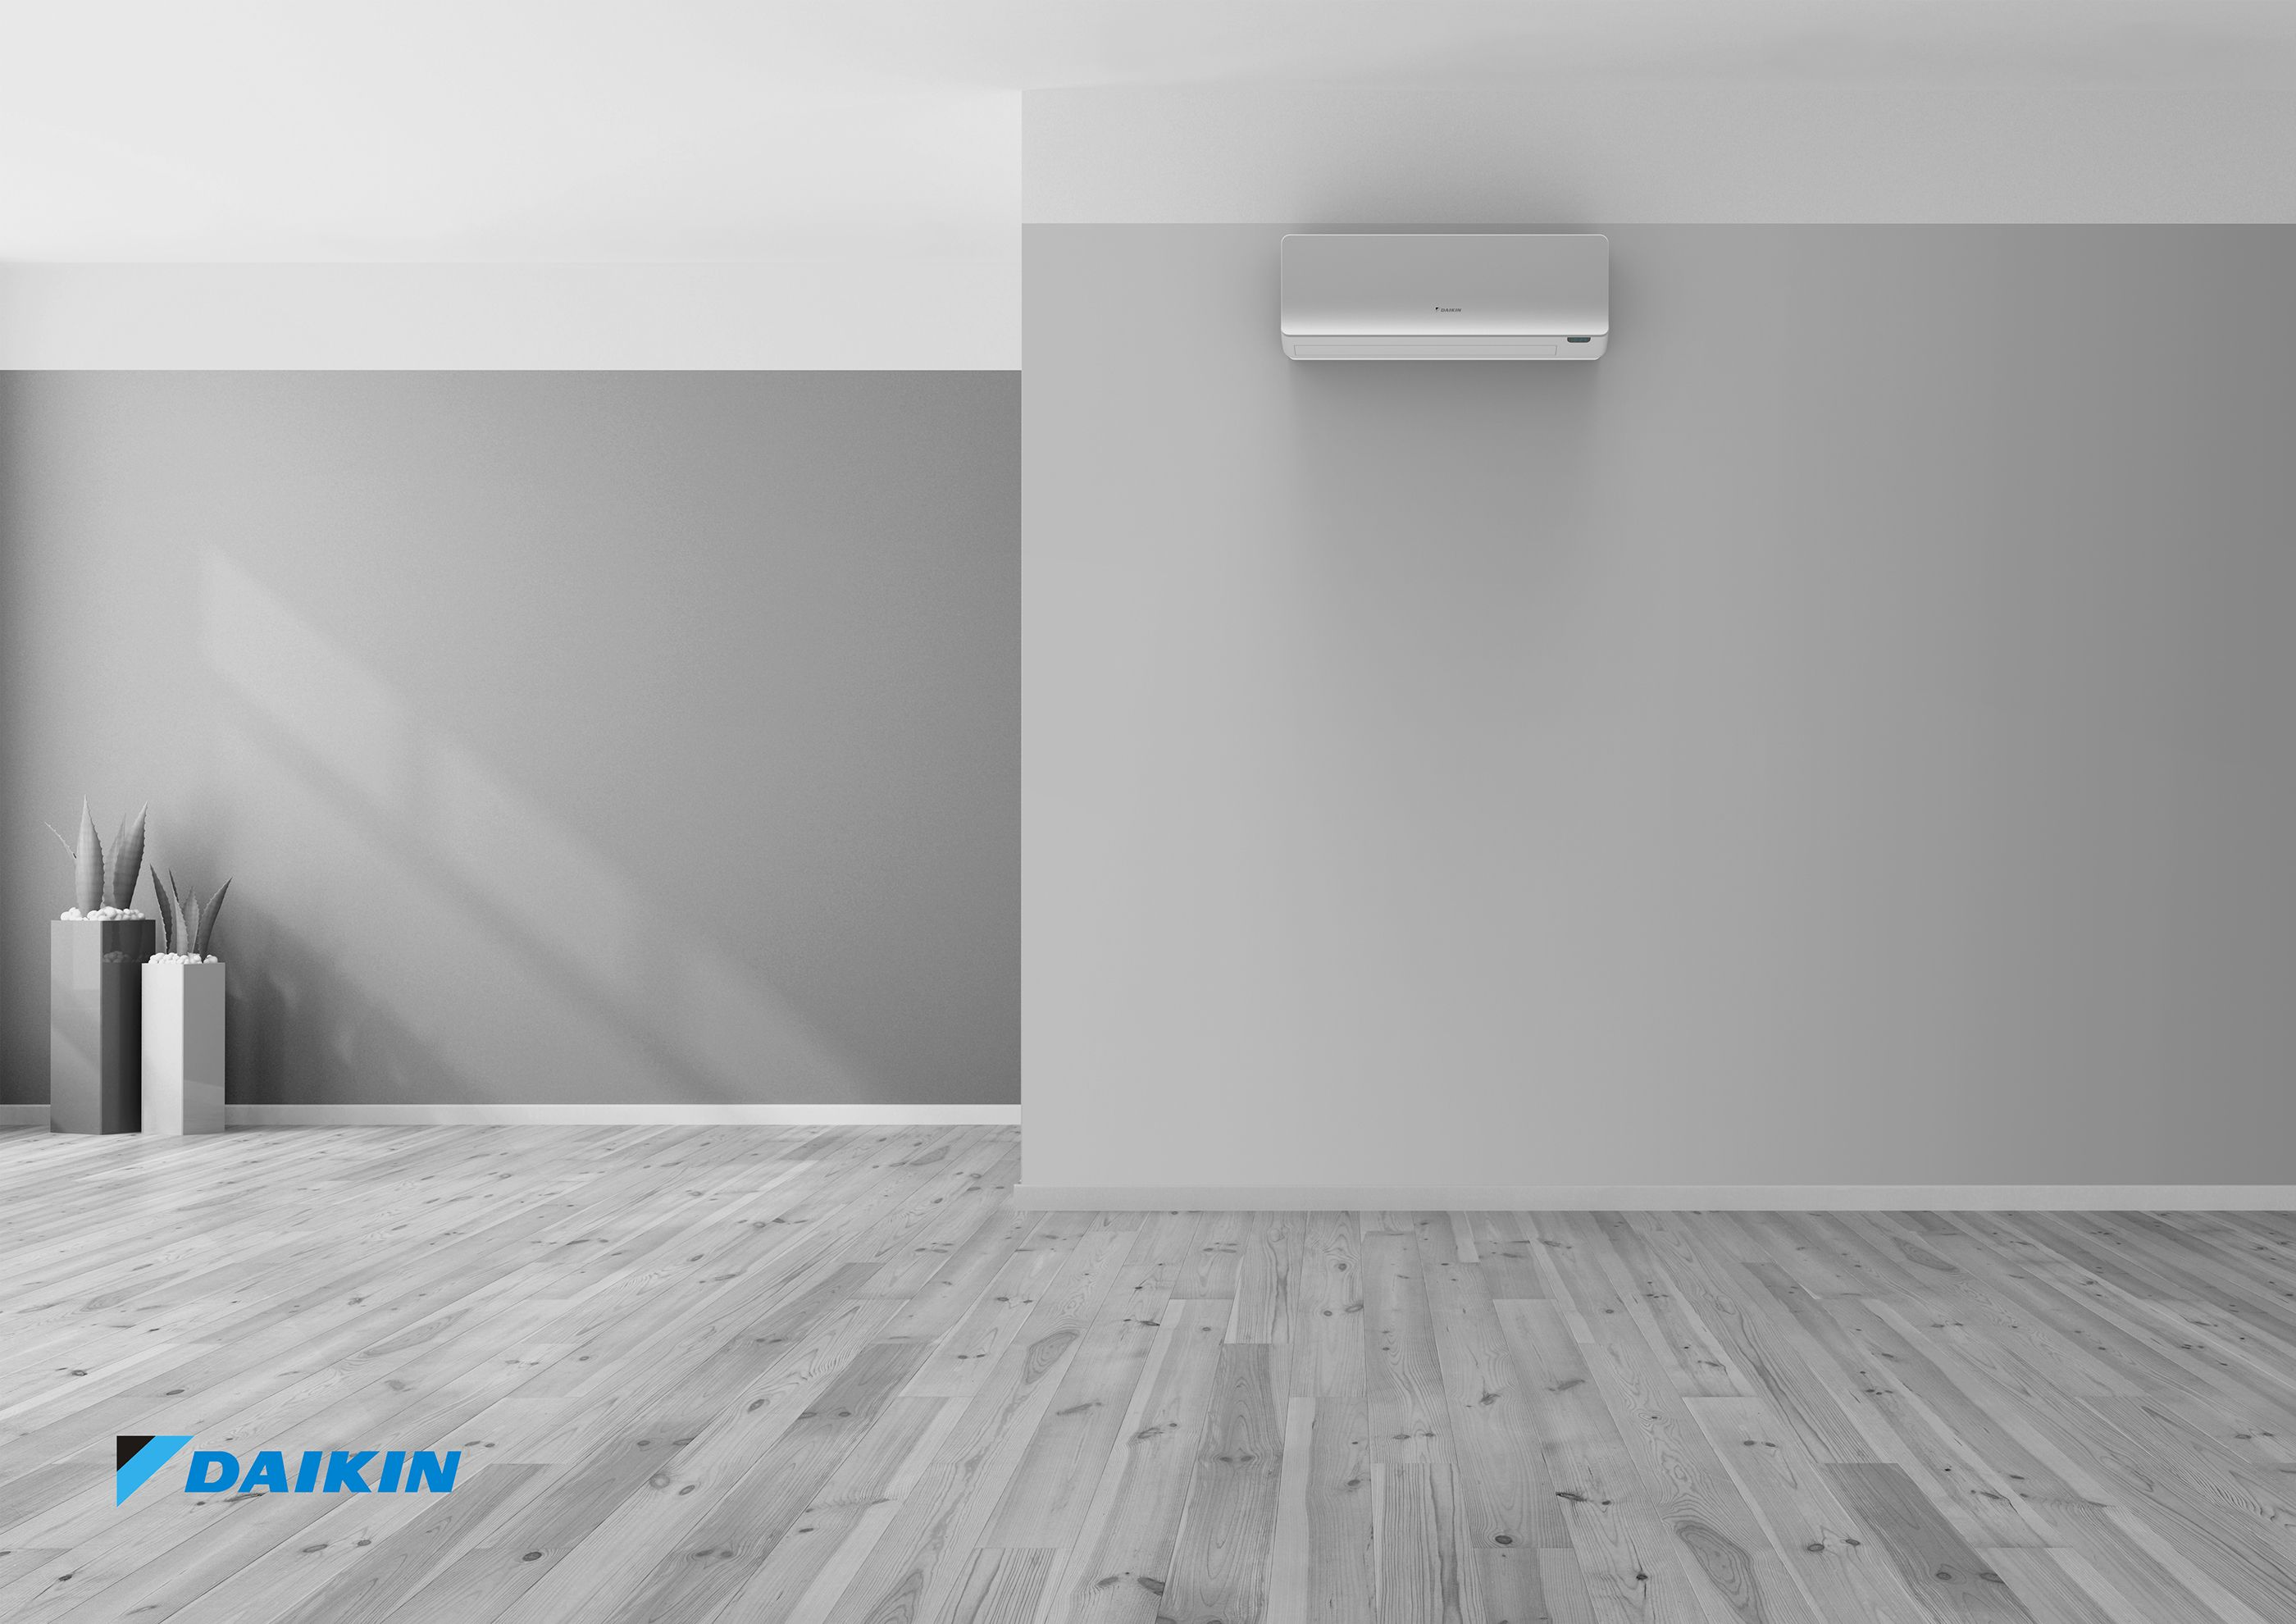 Indoor Air Conditioning For Daikin With Images Indoor Air